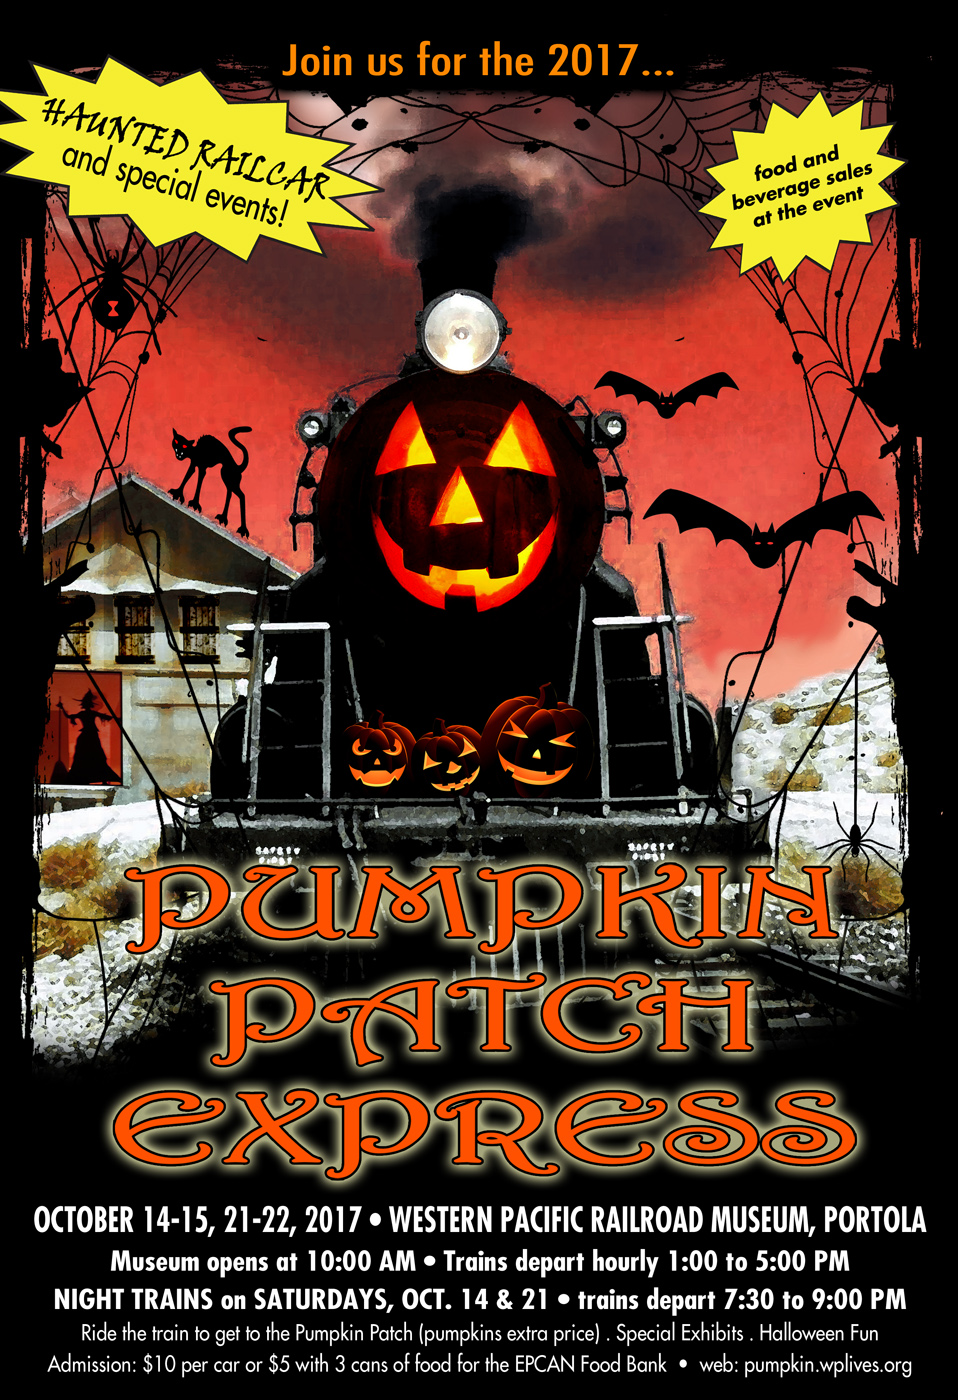 /marketing/pumpkin_trains_2017/2017_Pumpkin_poster_full_size.jpg